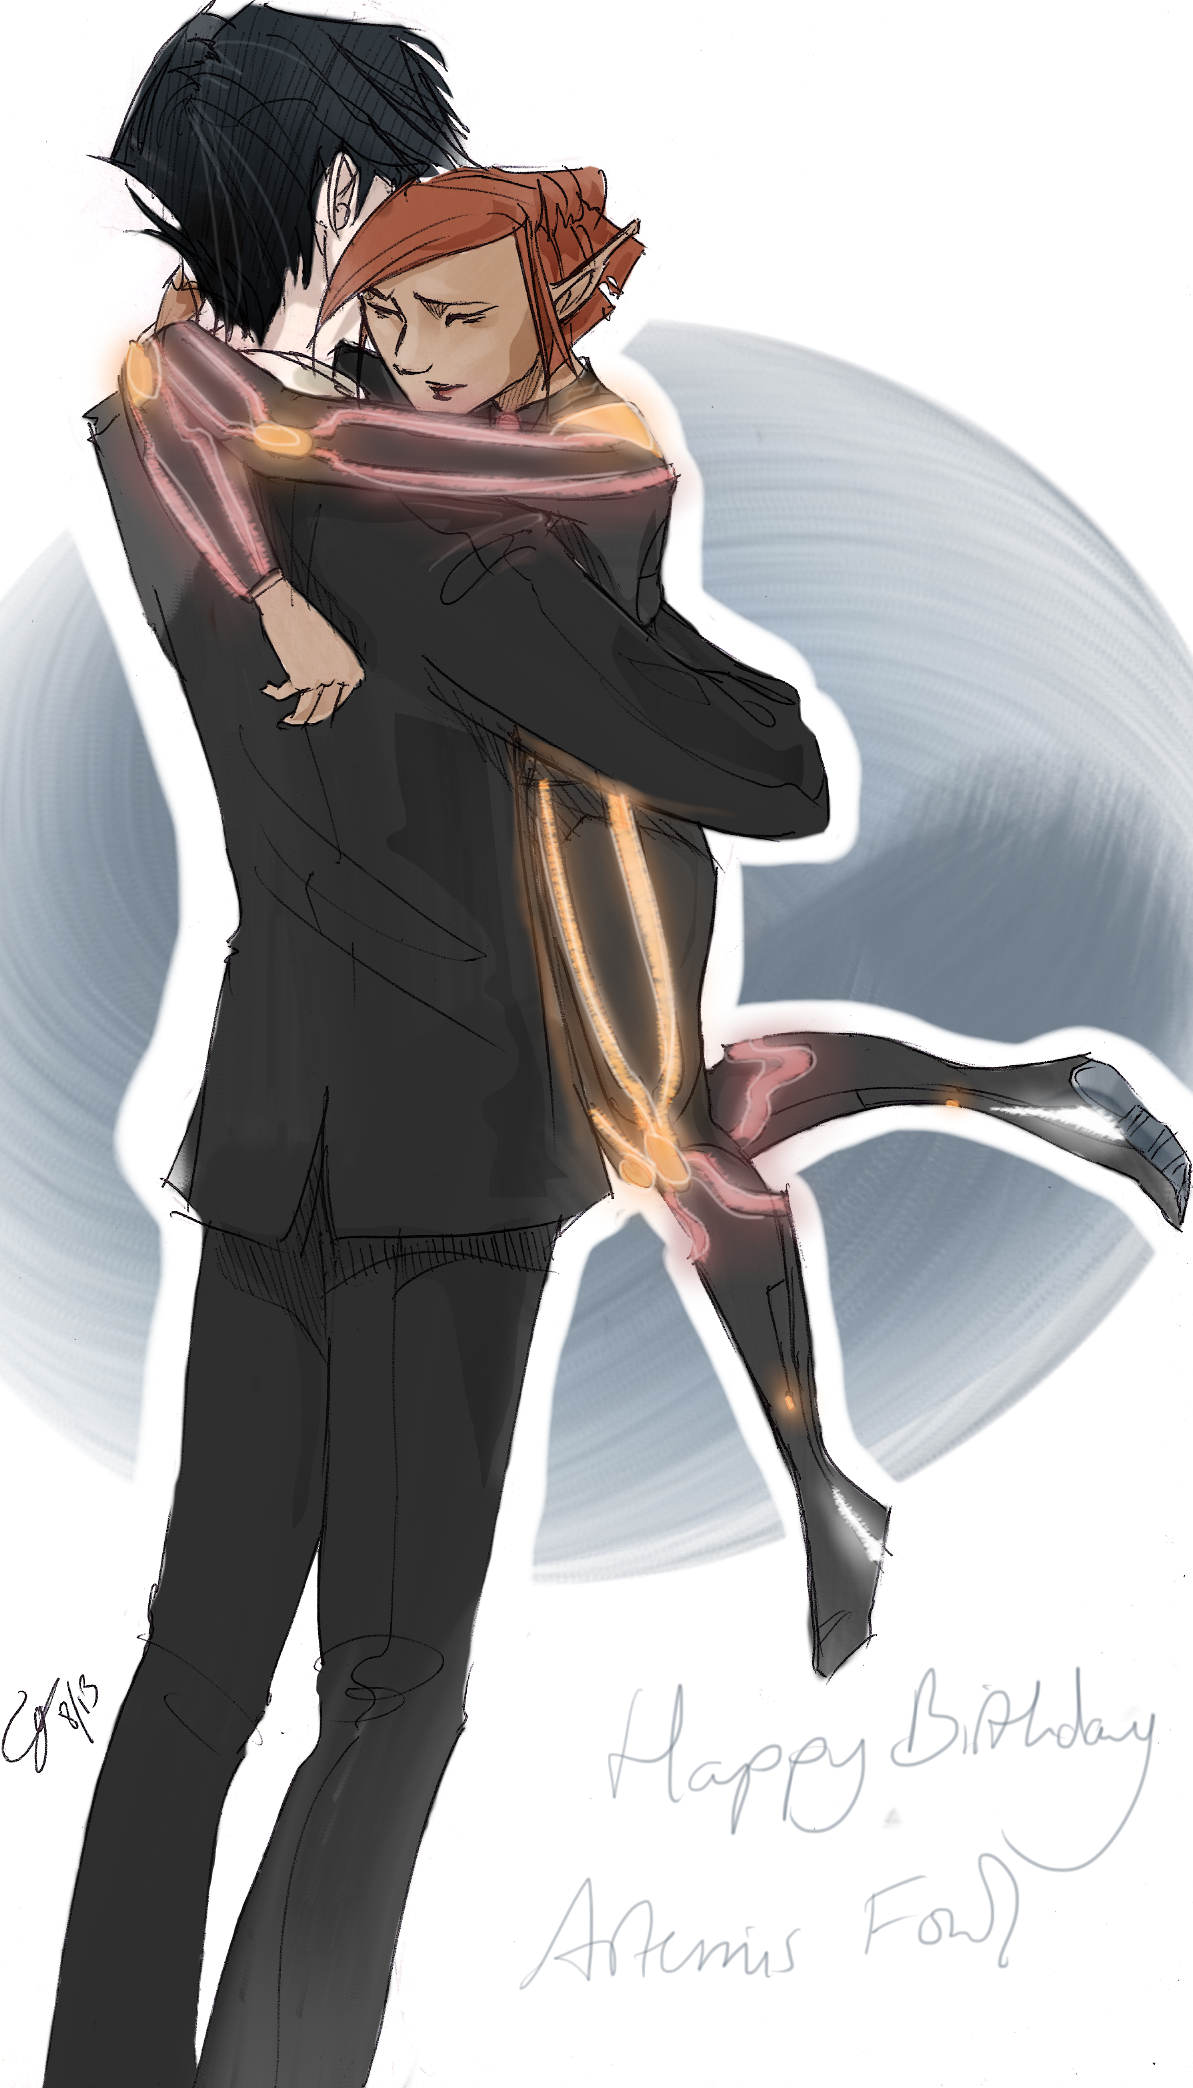 Artemis Fowl favourites by LightEcoSage1 on DeviantArt